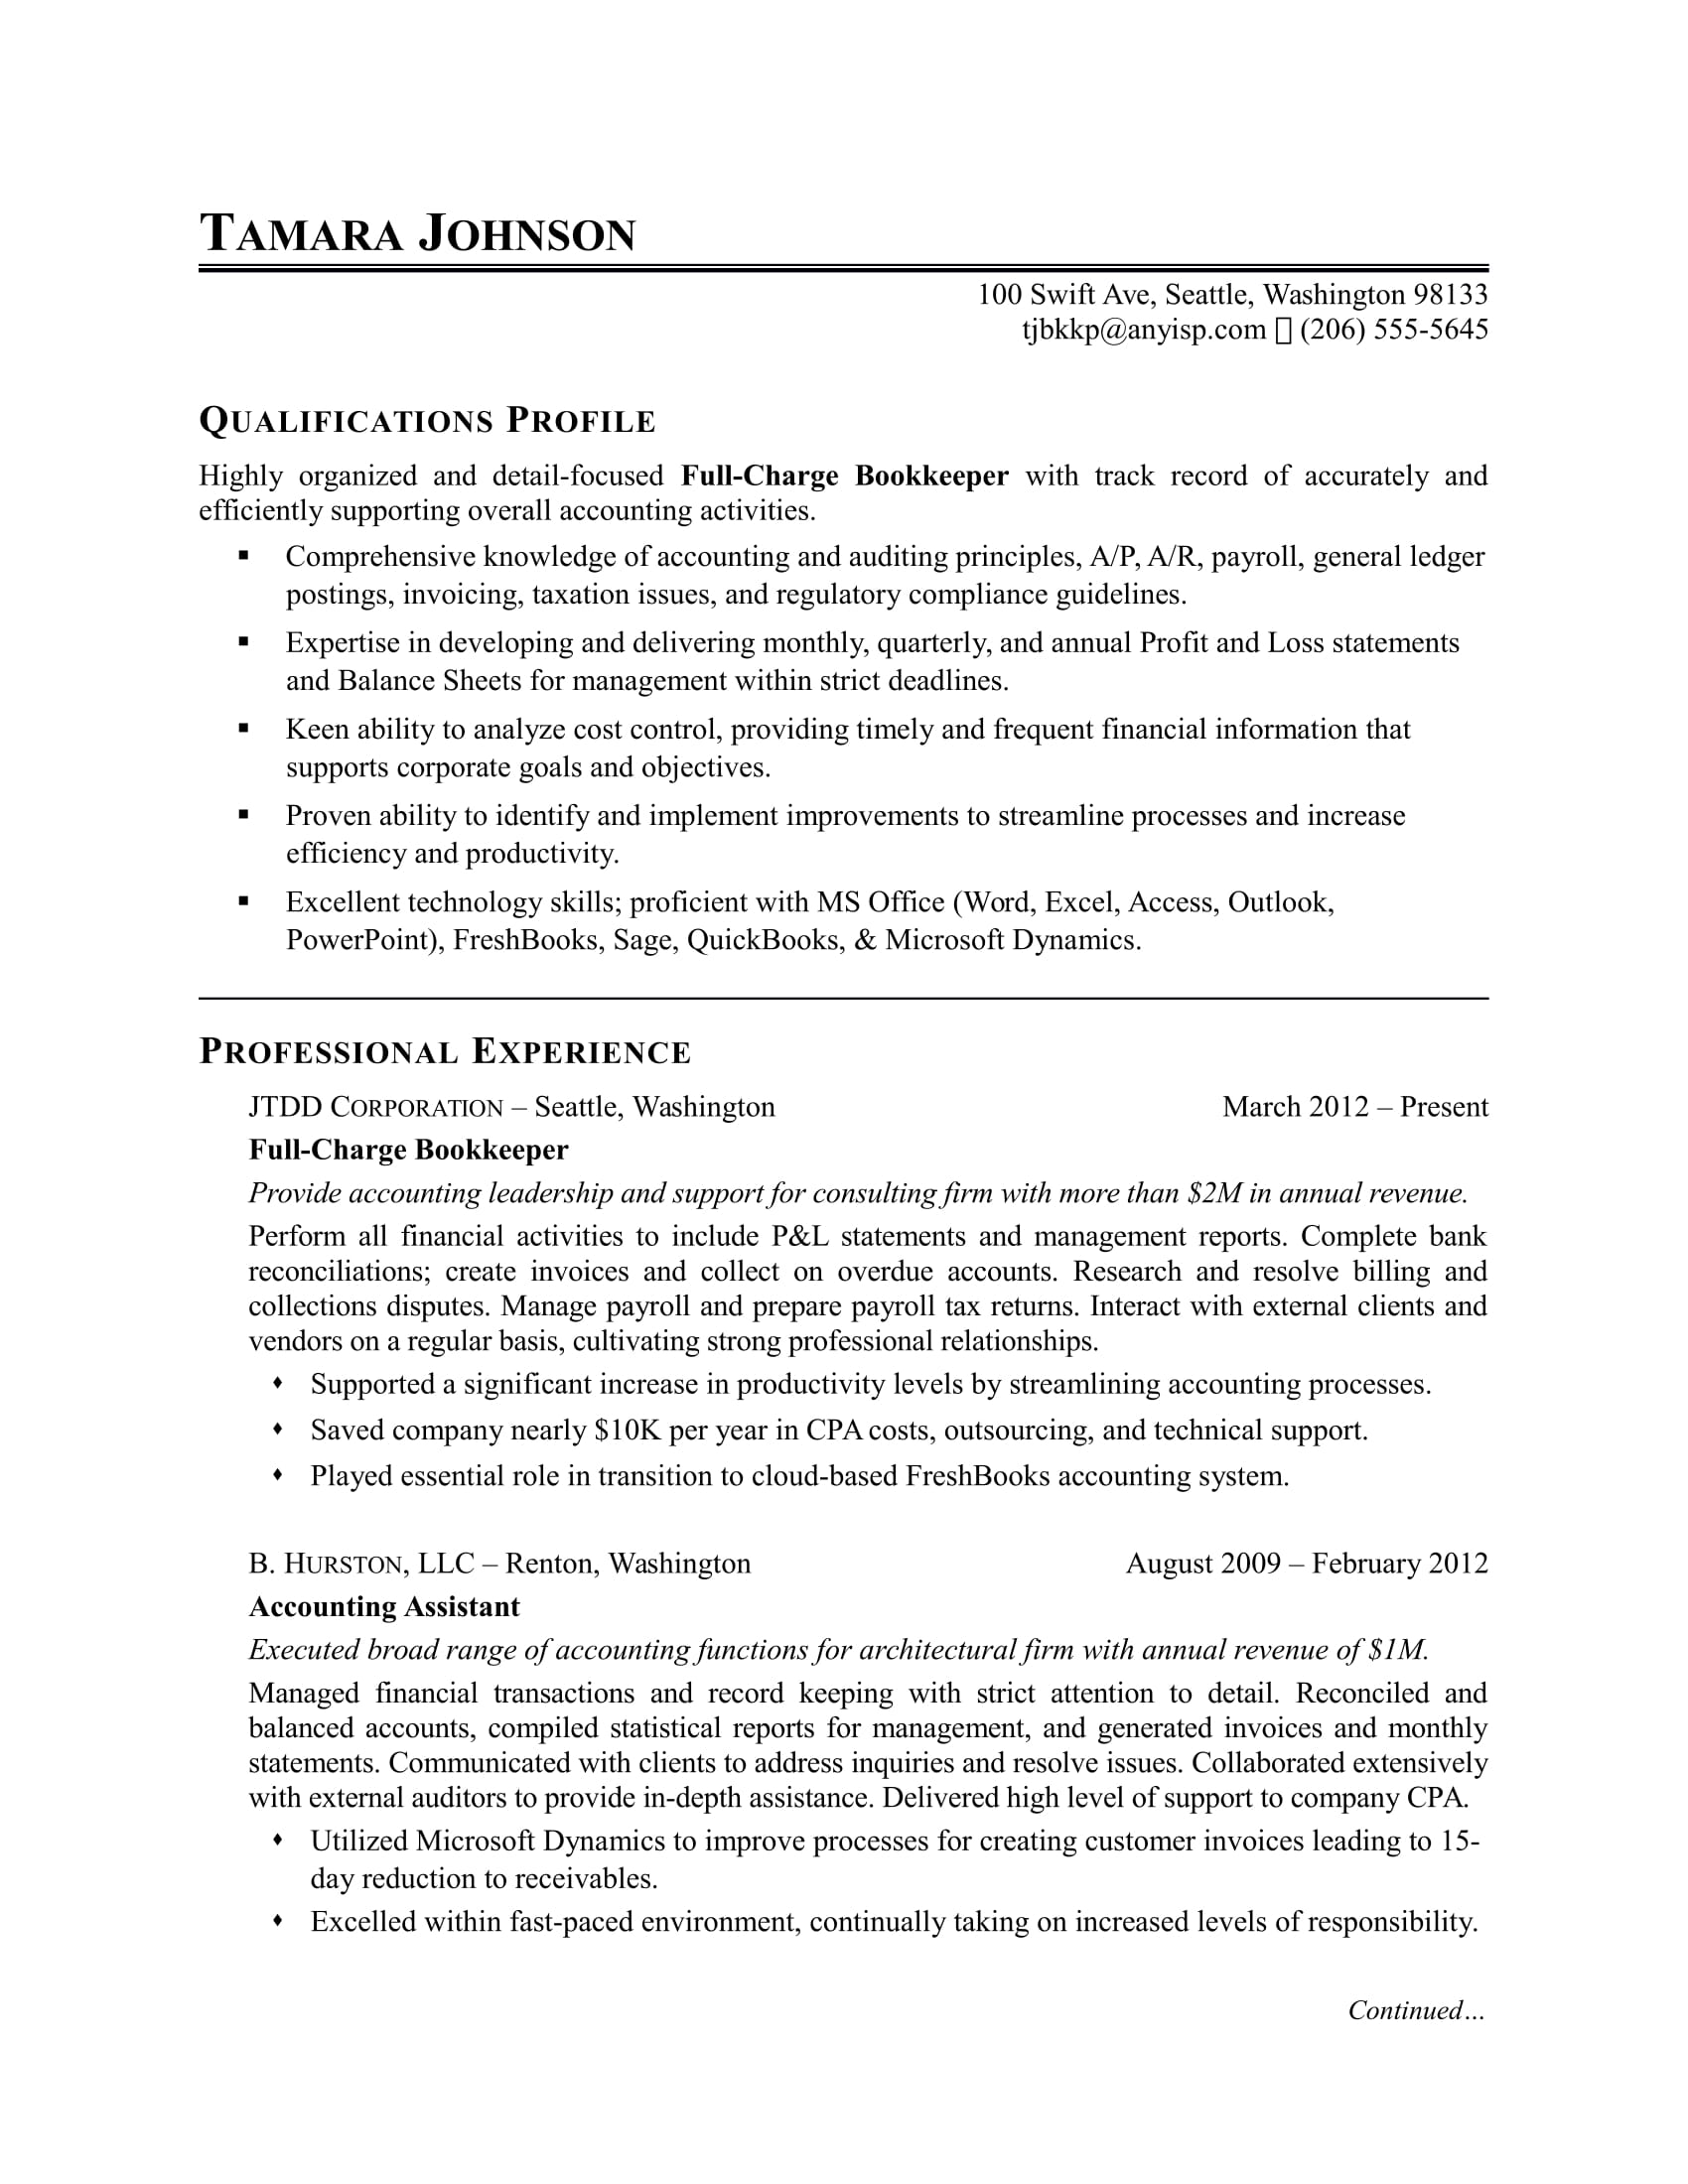 Sample resume for a bookkeeper